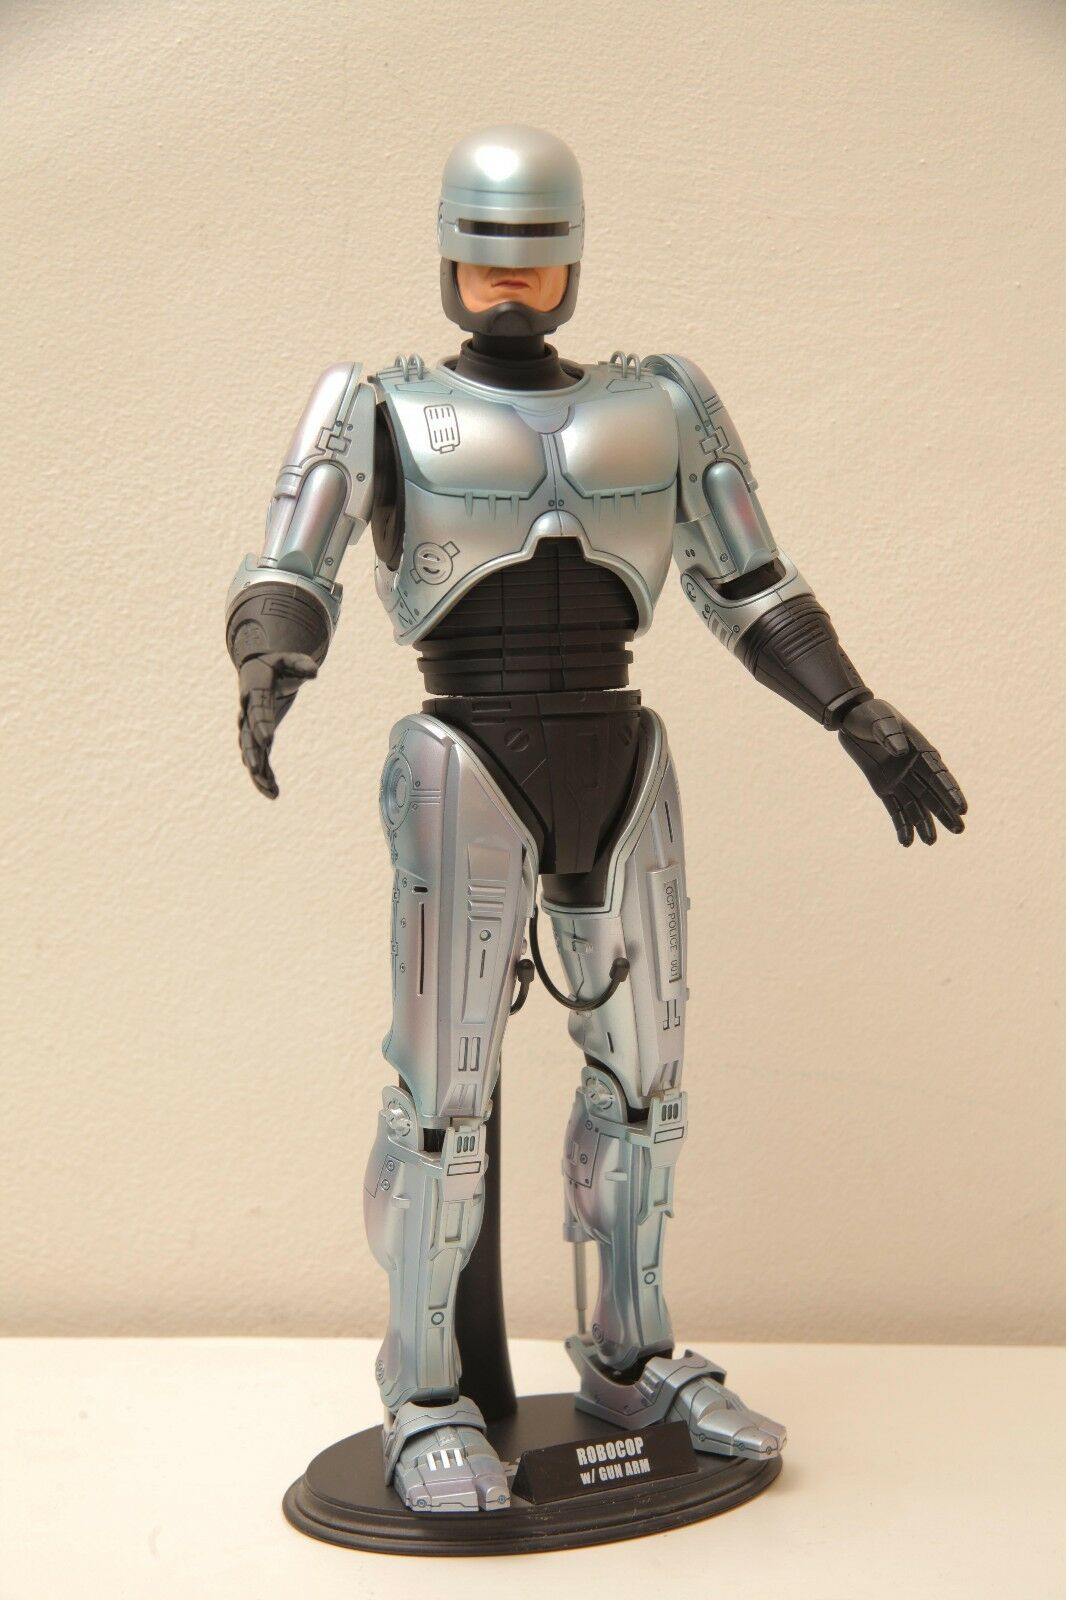 Hot Toys Robocop v1 1/6 Action Figure Loose